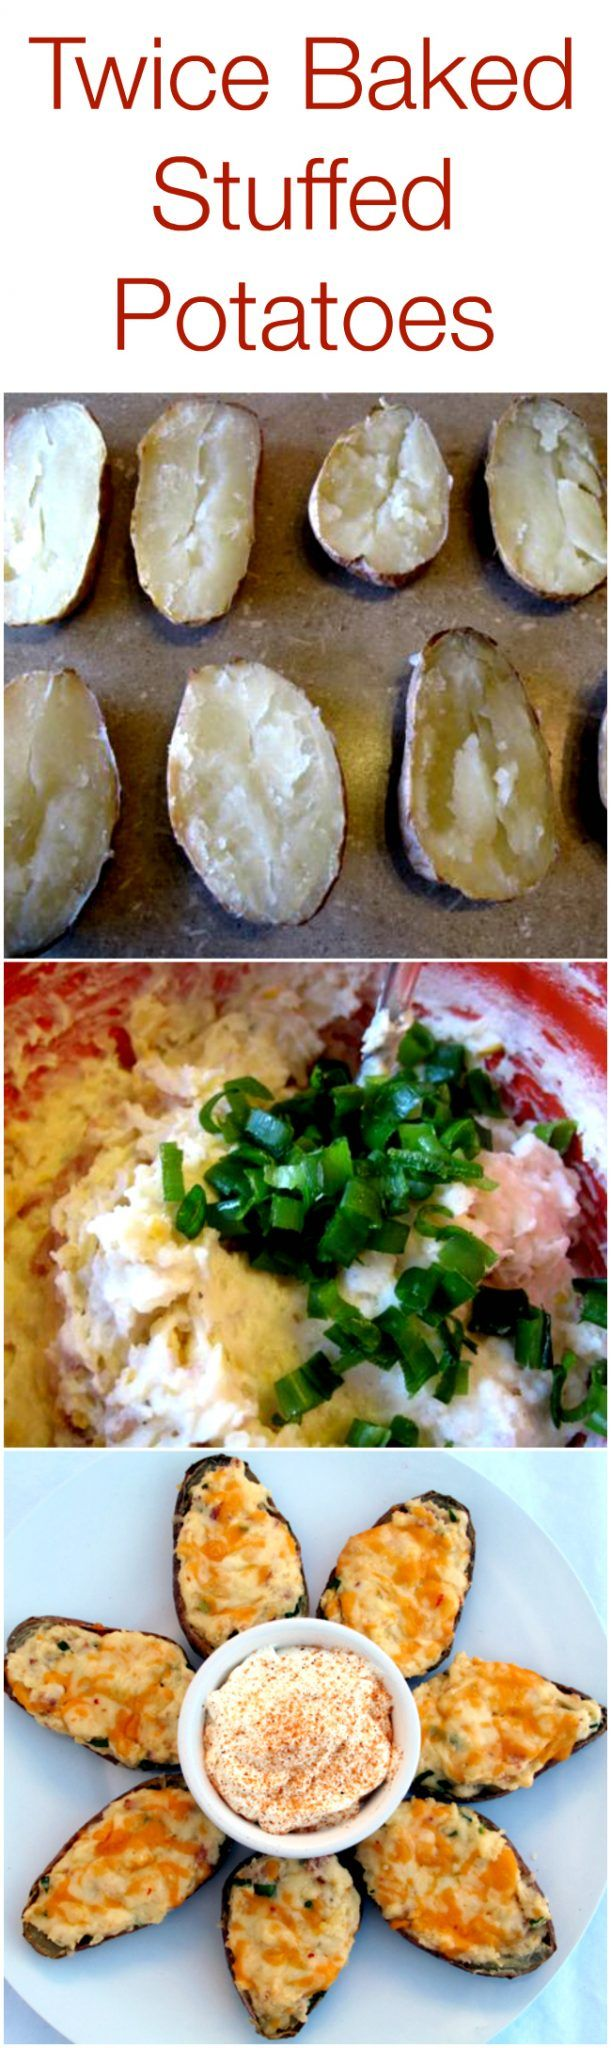 The Absolute Best EverTwice Baked Stuffed Potatoes recipe, with step by step photo instructions!